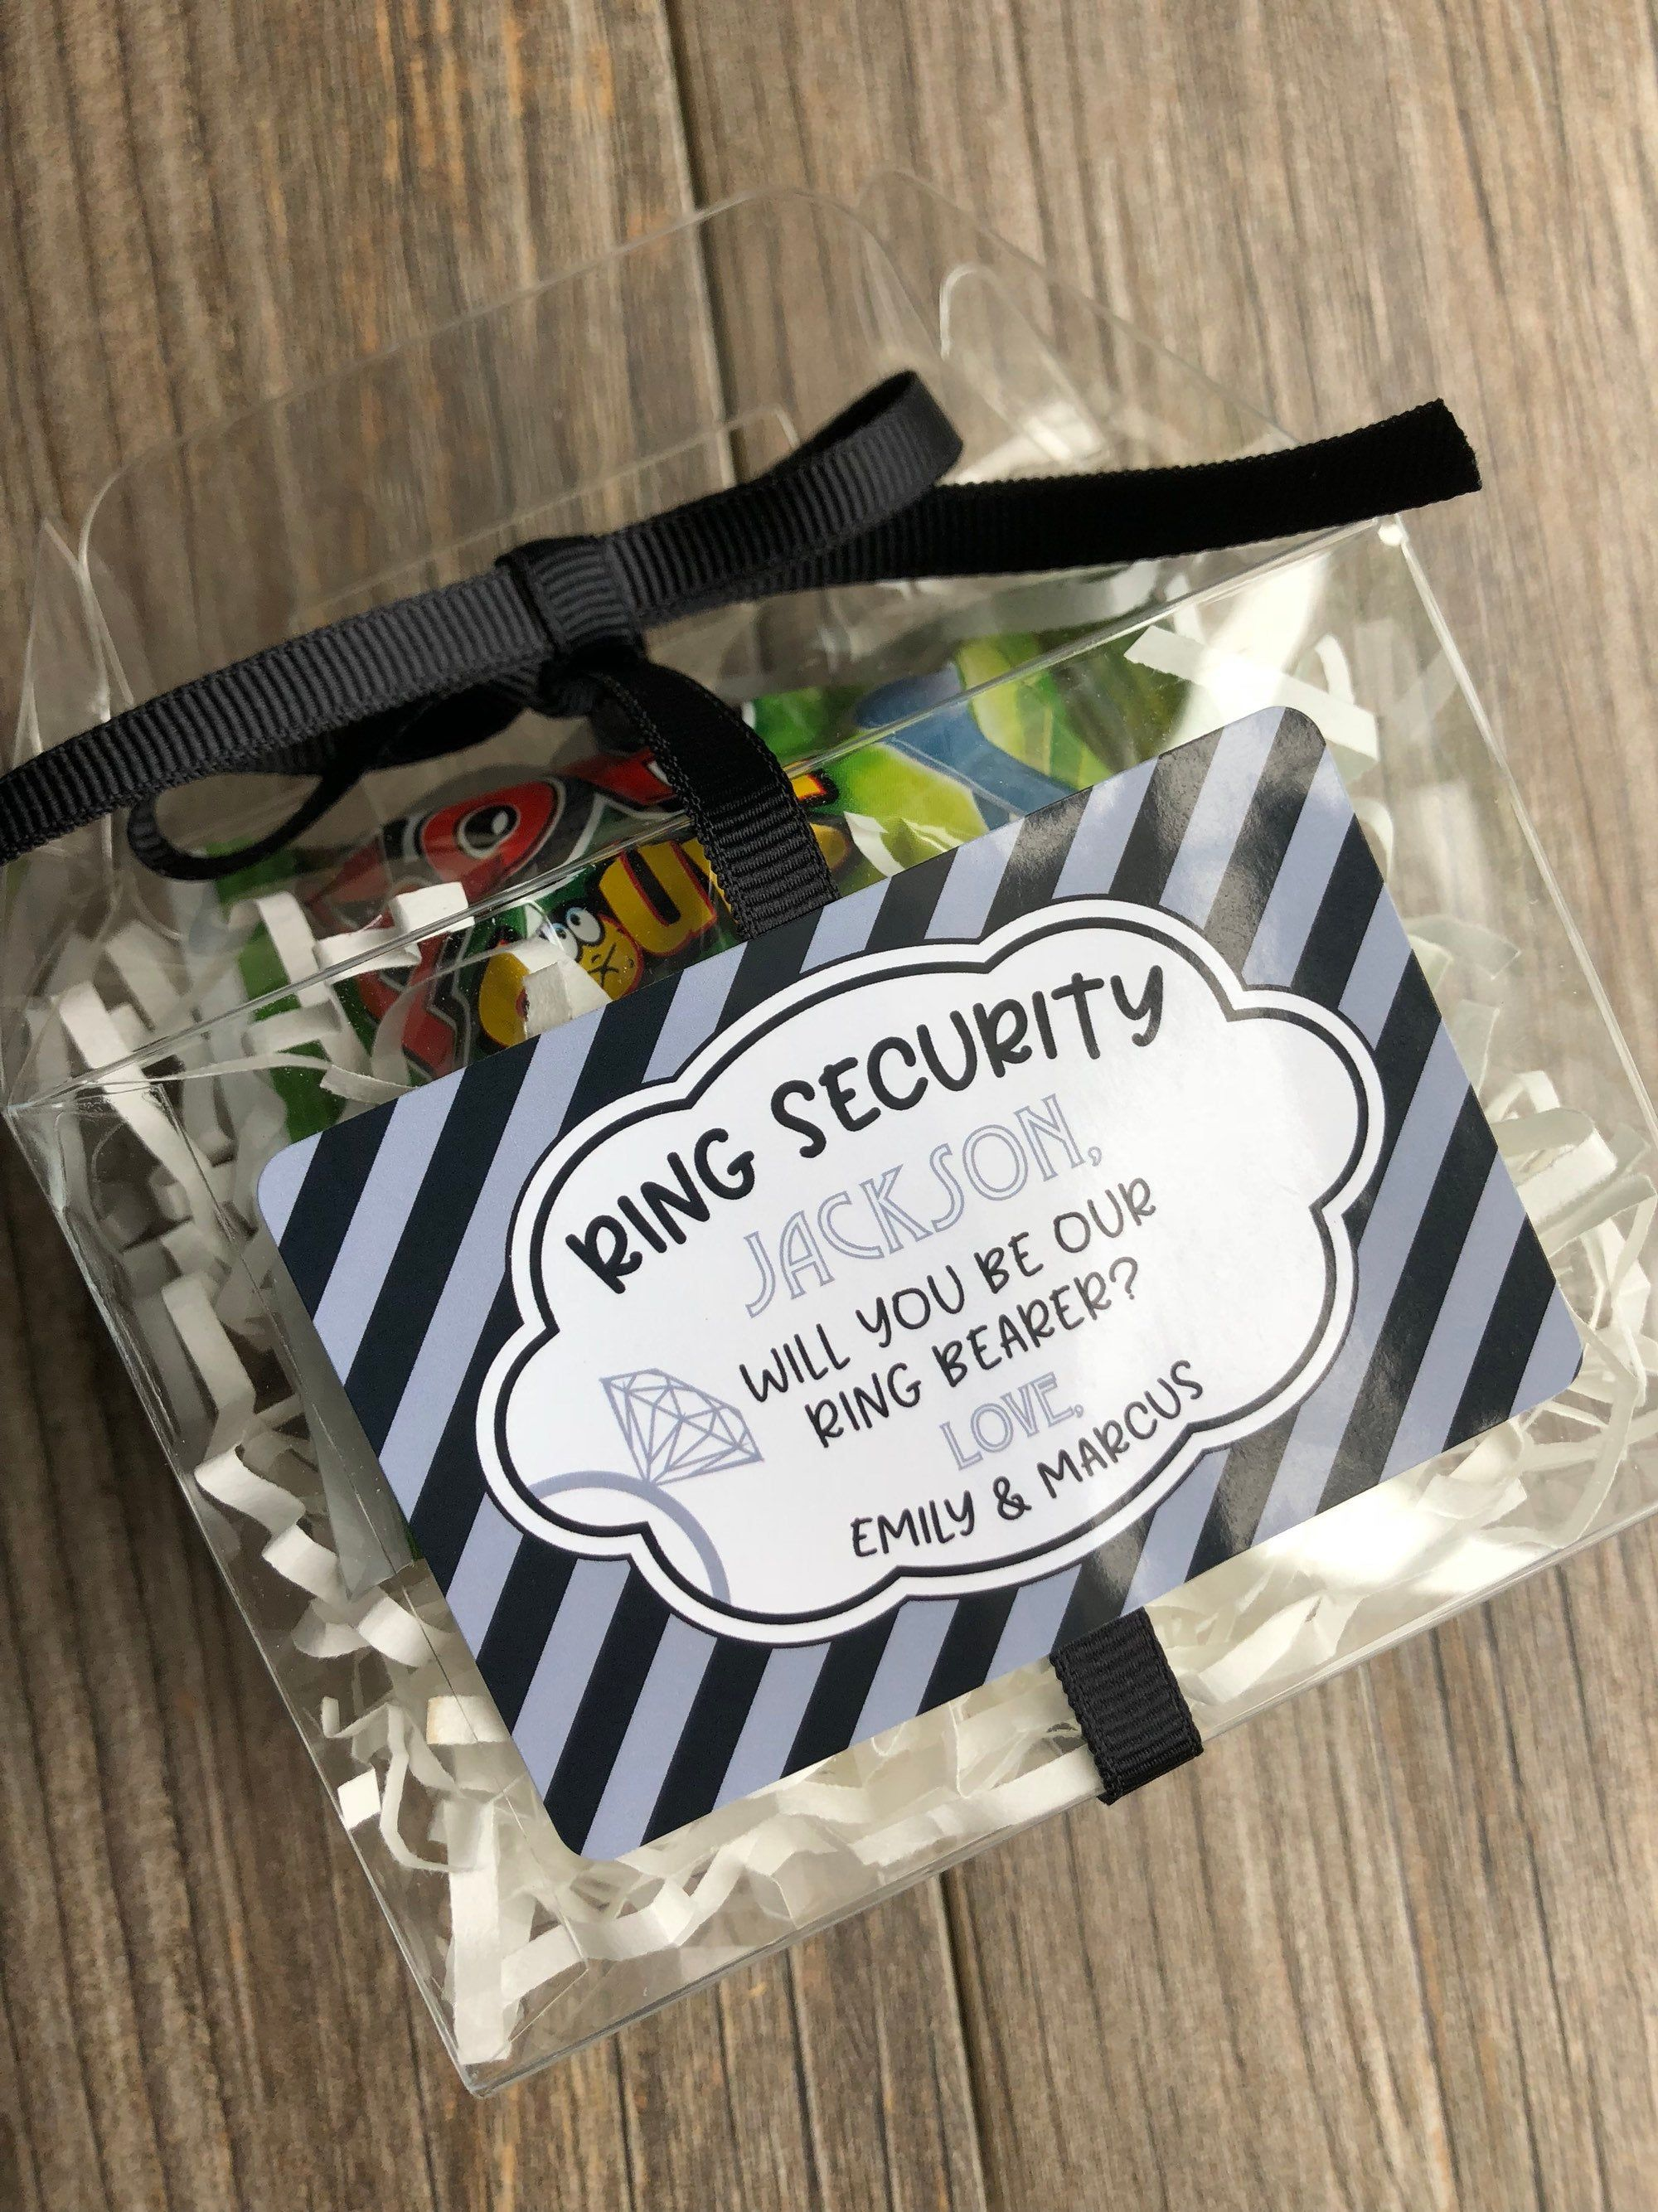 27+ Ring security wedding proposal ideas in 2021